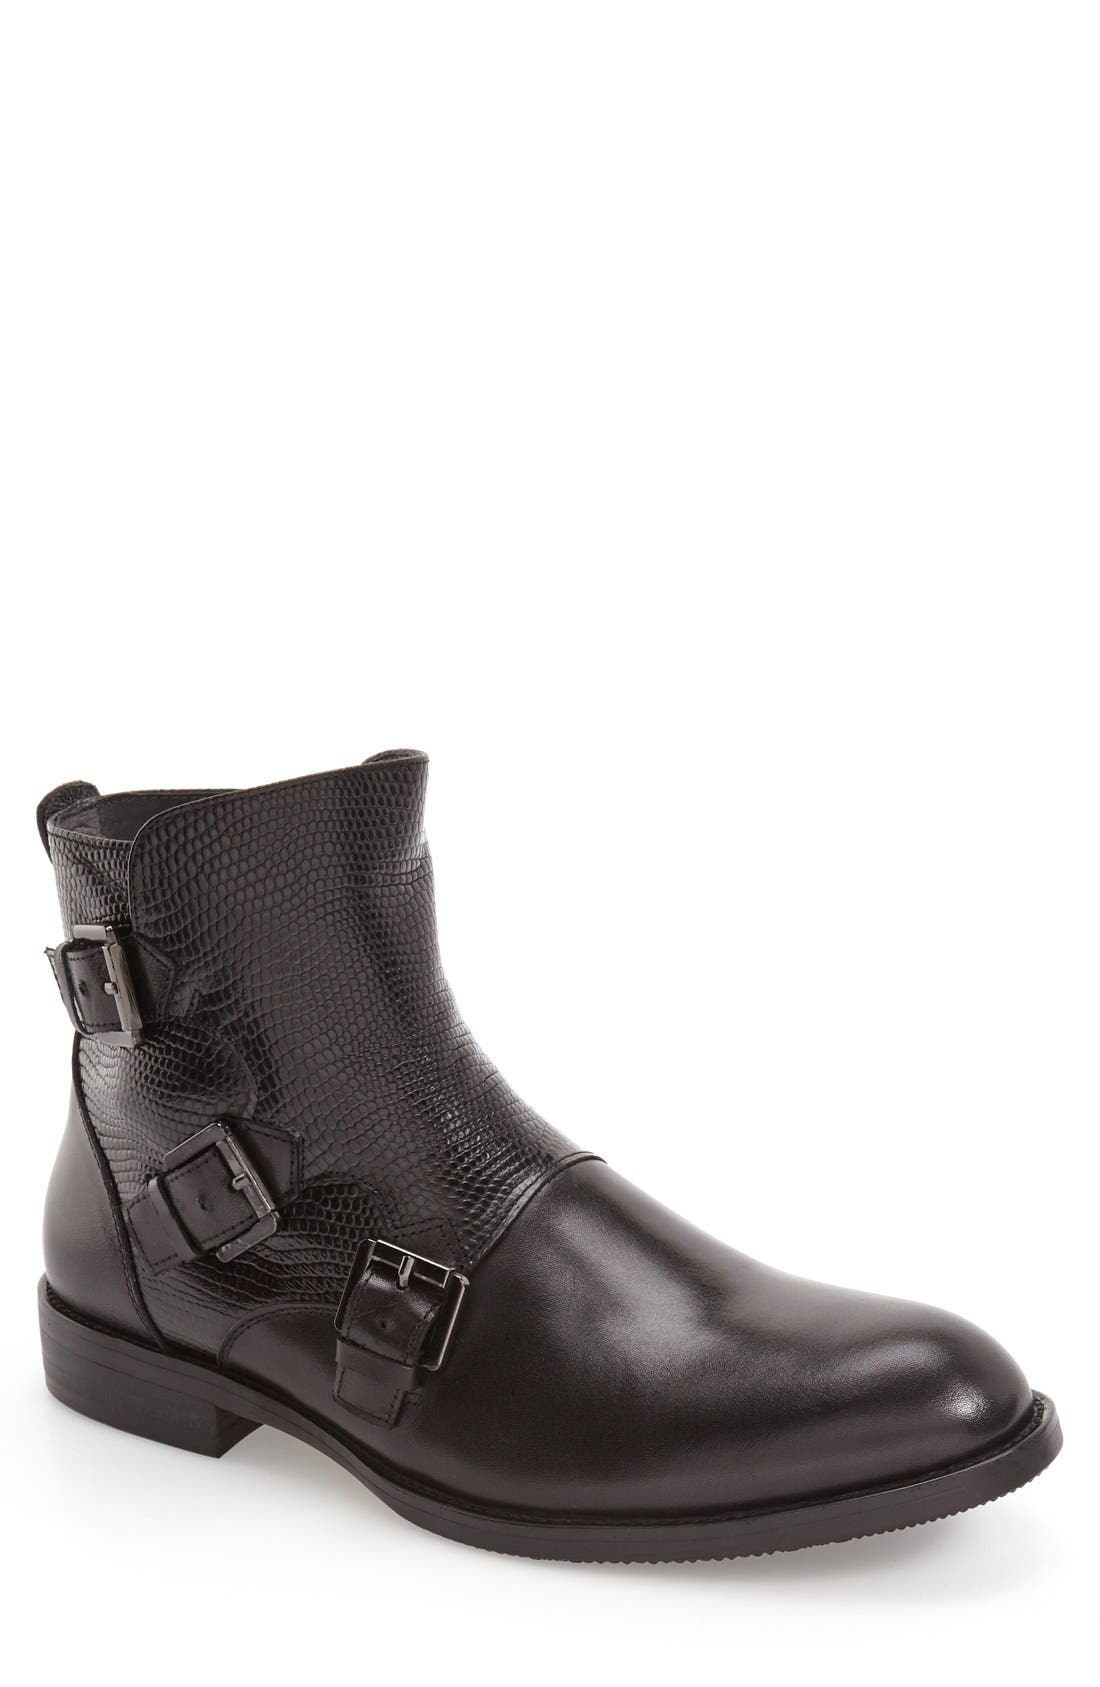 Alternate Image 1 Selected - Zanzara 'Messina' Zip Boot (Men)